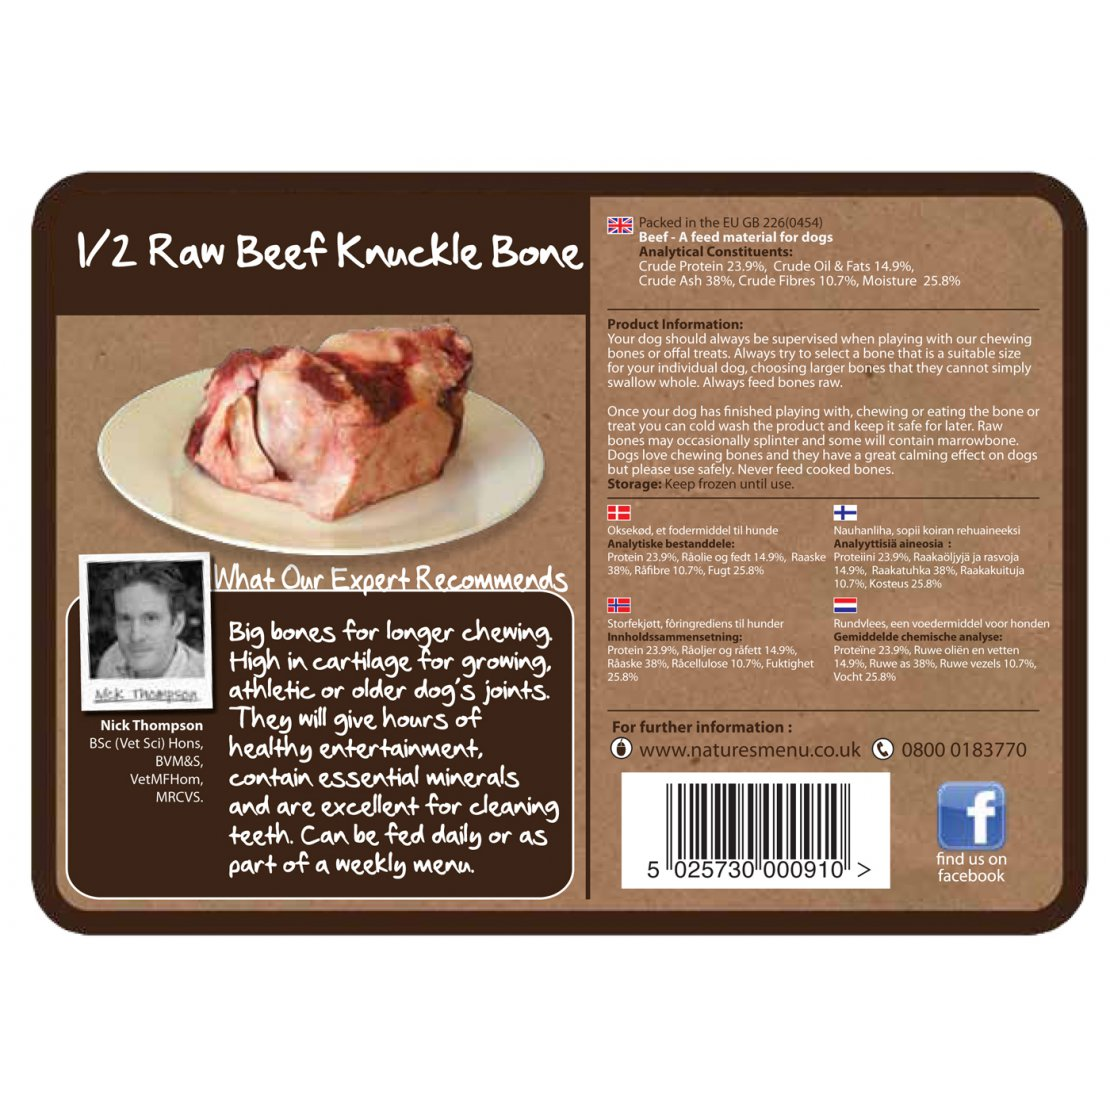 ONLY AVAILABLE FOR LOCAL DELIVERY. Natures Menu. Frozen Dog Chew. Knuckle Bone